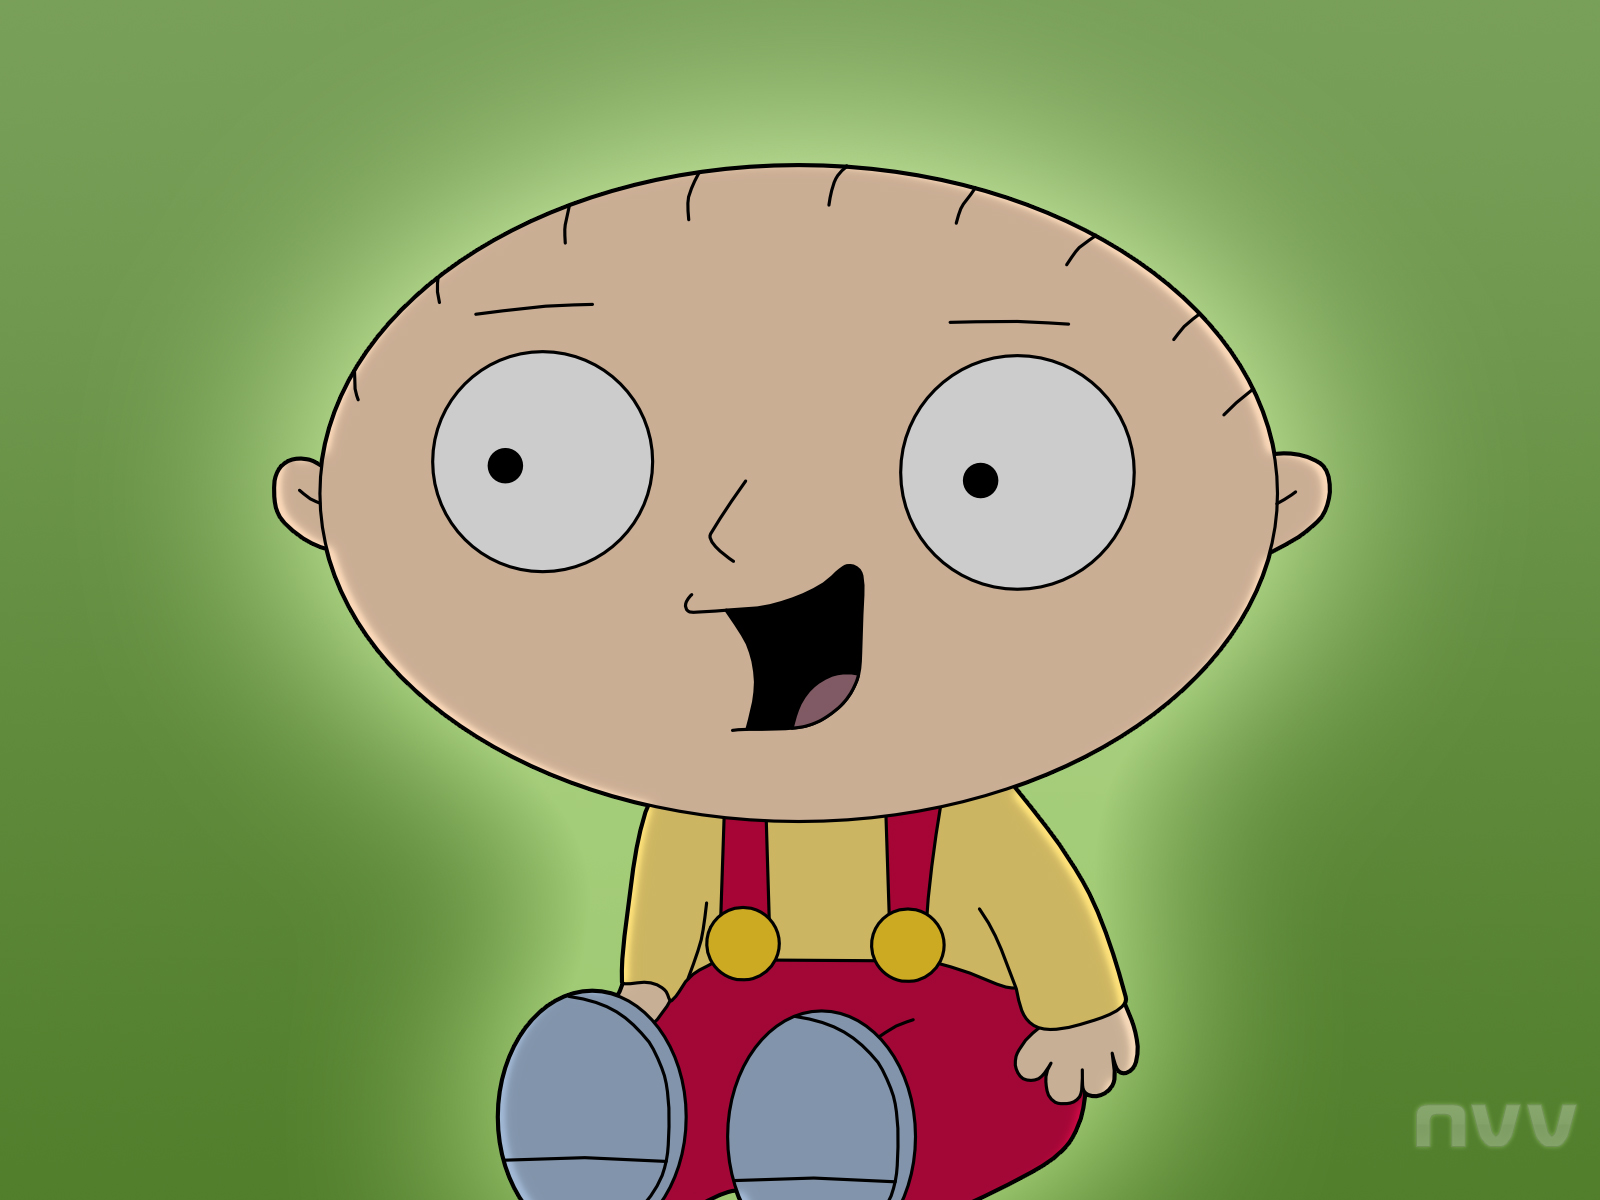 CapRiMax Oh Hes the FAMILY GUY 1600x1200